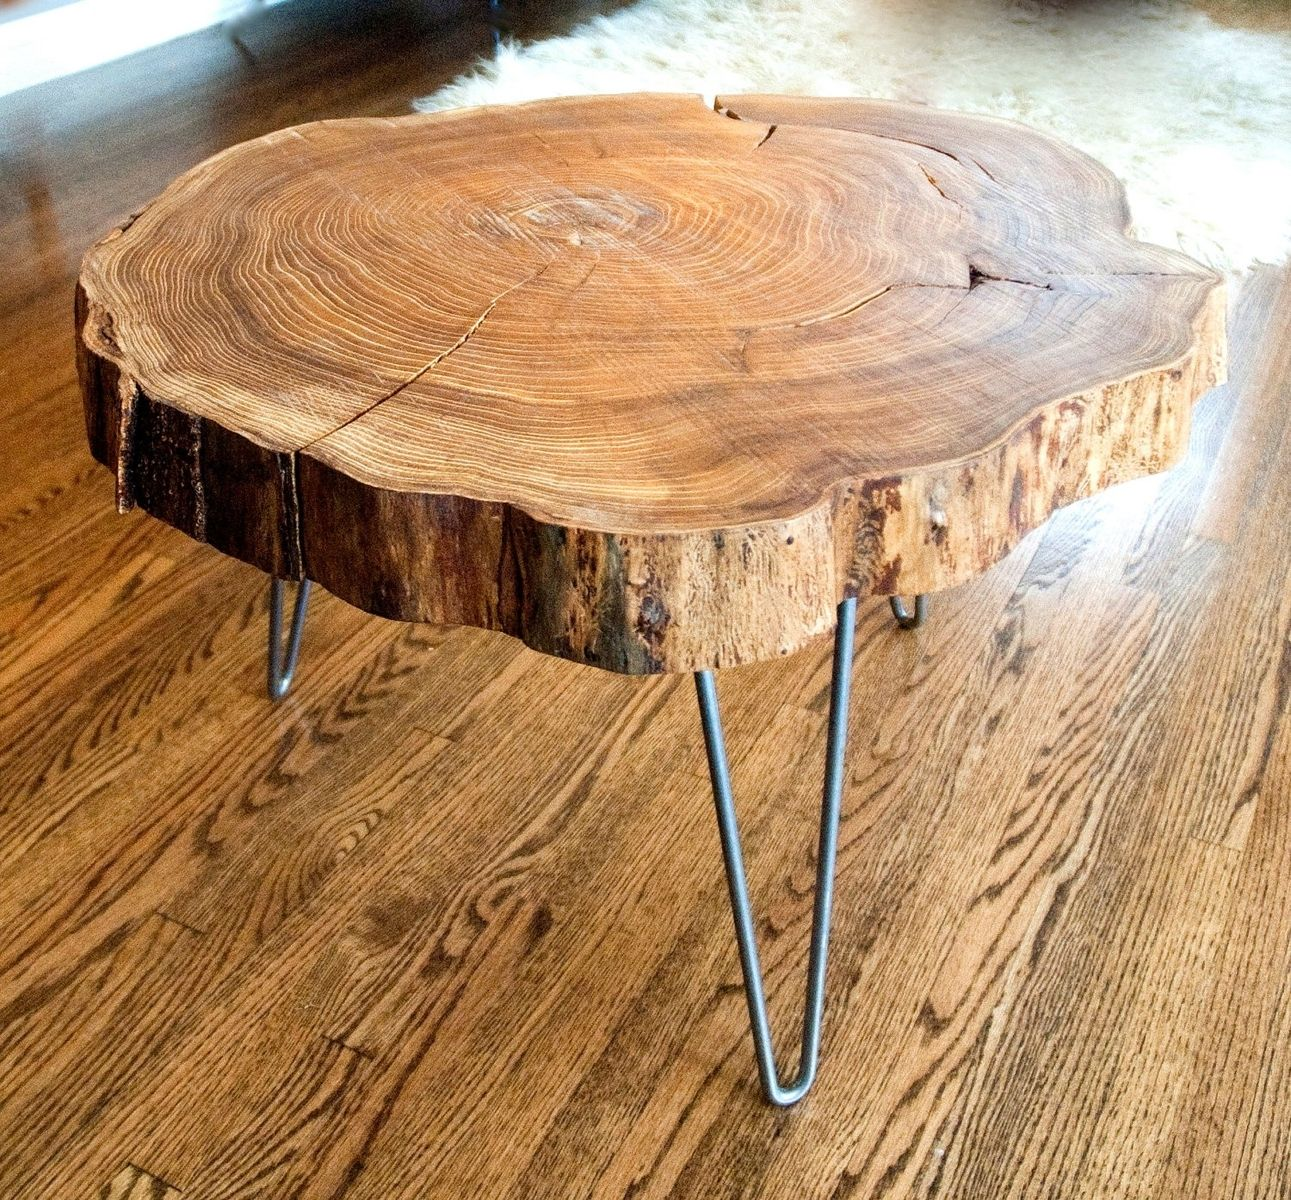 Custom Natural Live Edge Round Slab Side Table / Coffee Table With Steel Legs by Norsk Valley ...